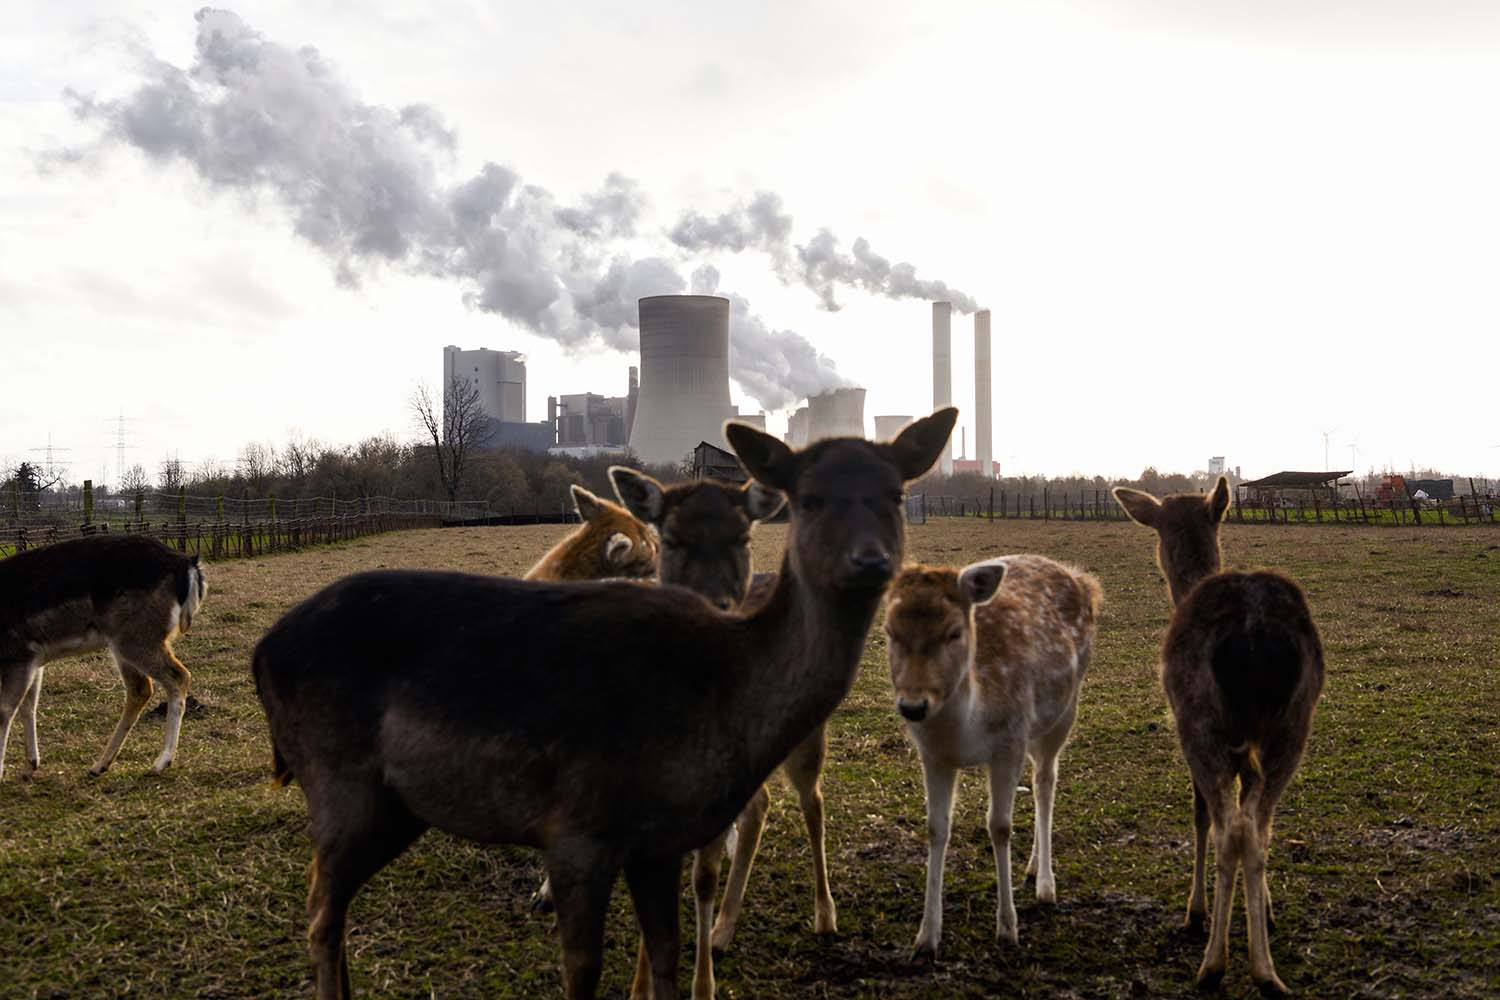 Deer stand in a field near a coal power plant of German energy giant RWE in Niederaussem, western Germany, on Jan. 29. Bowing to public pressure on climate change, Germany pledged to speed its exit from coal power generation. INA FASSBENDER/AFP via Getty Images